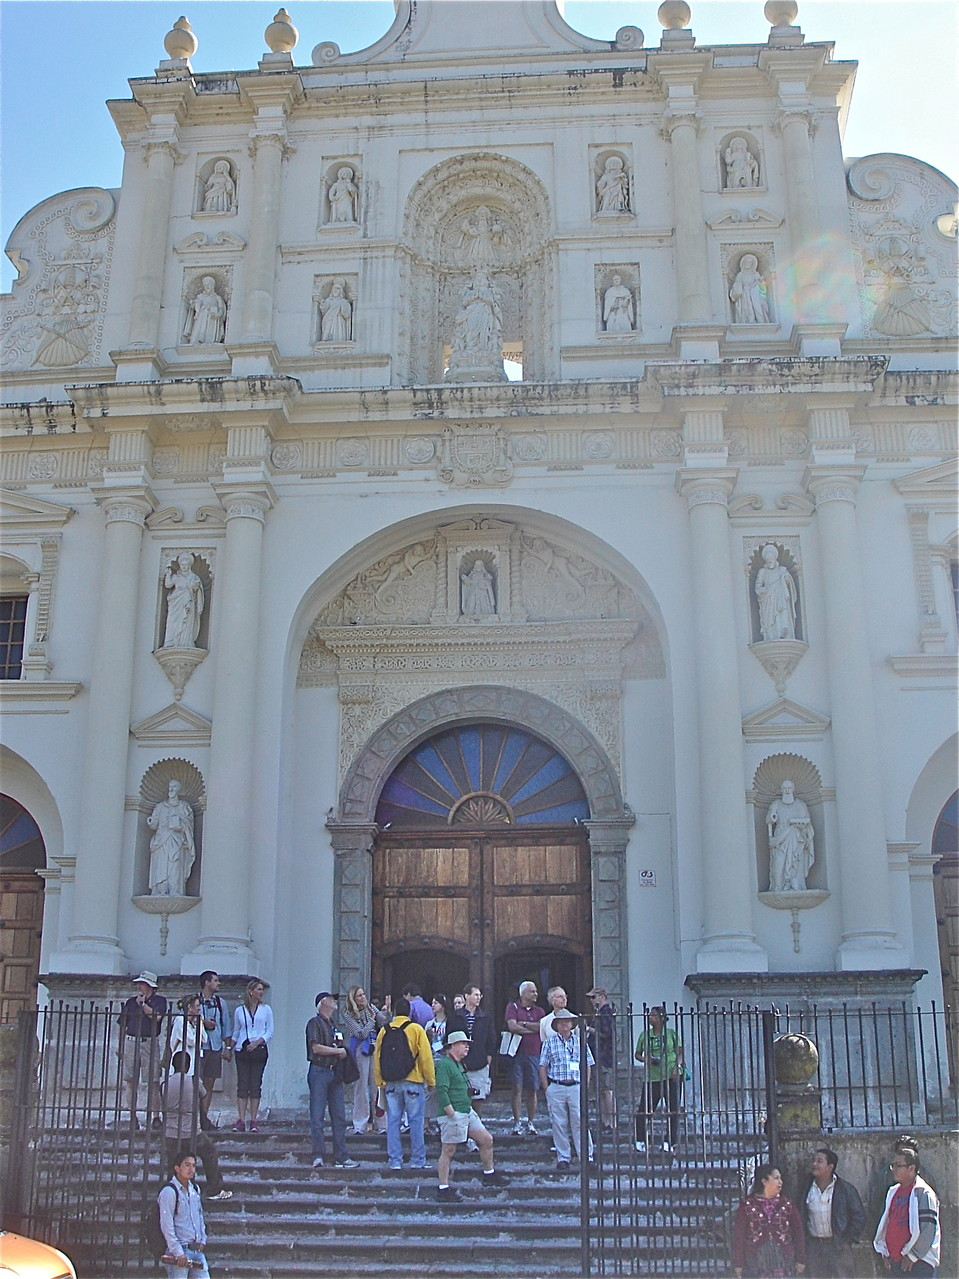 La Antigua Cathedral